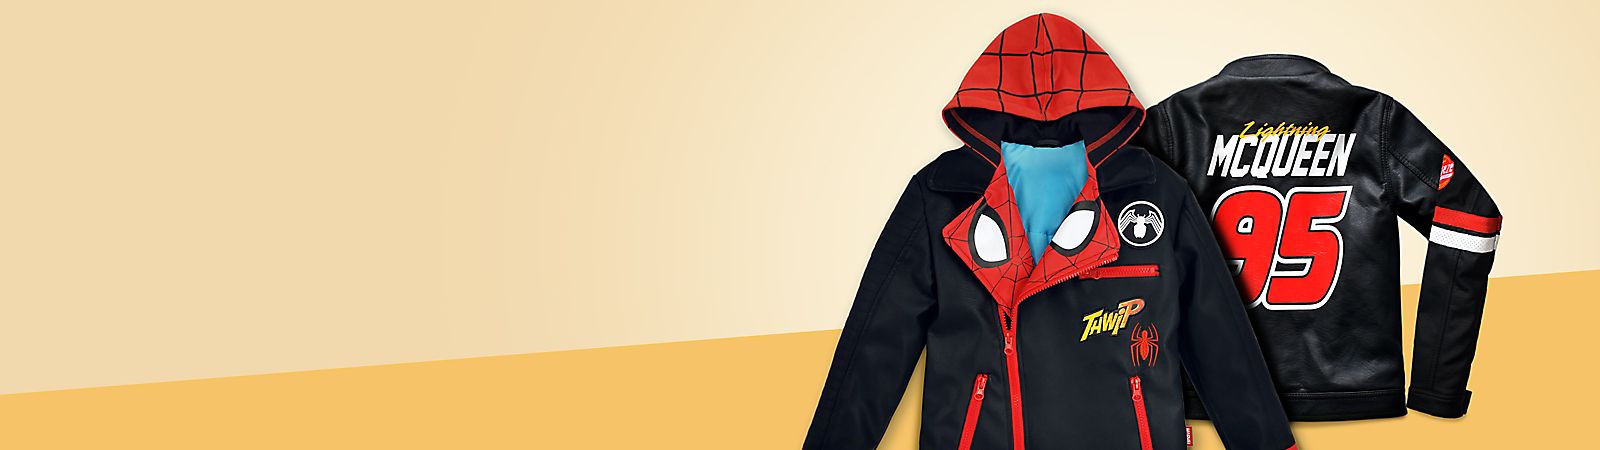 Boys' Clothing Made for adventure! We've got character fun T-shirts, jackets, outfits & more.